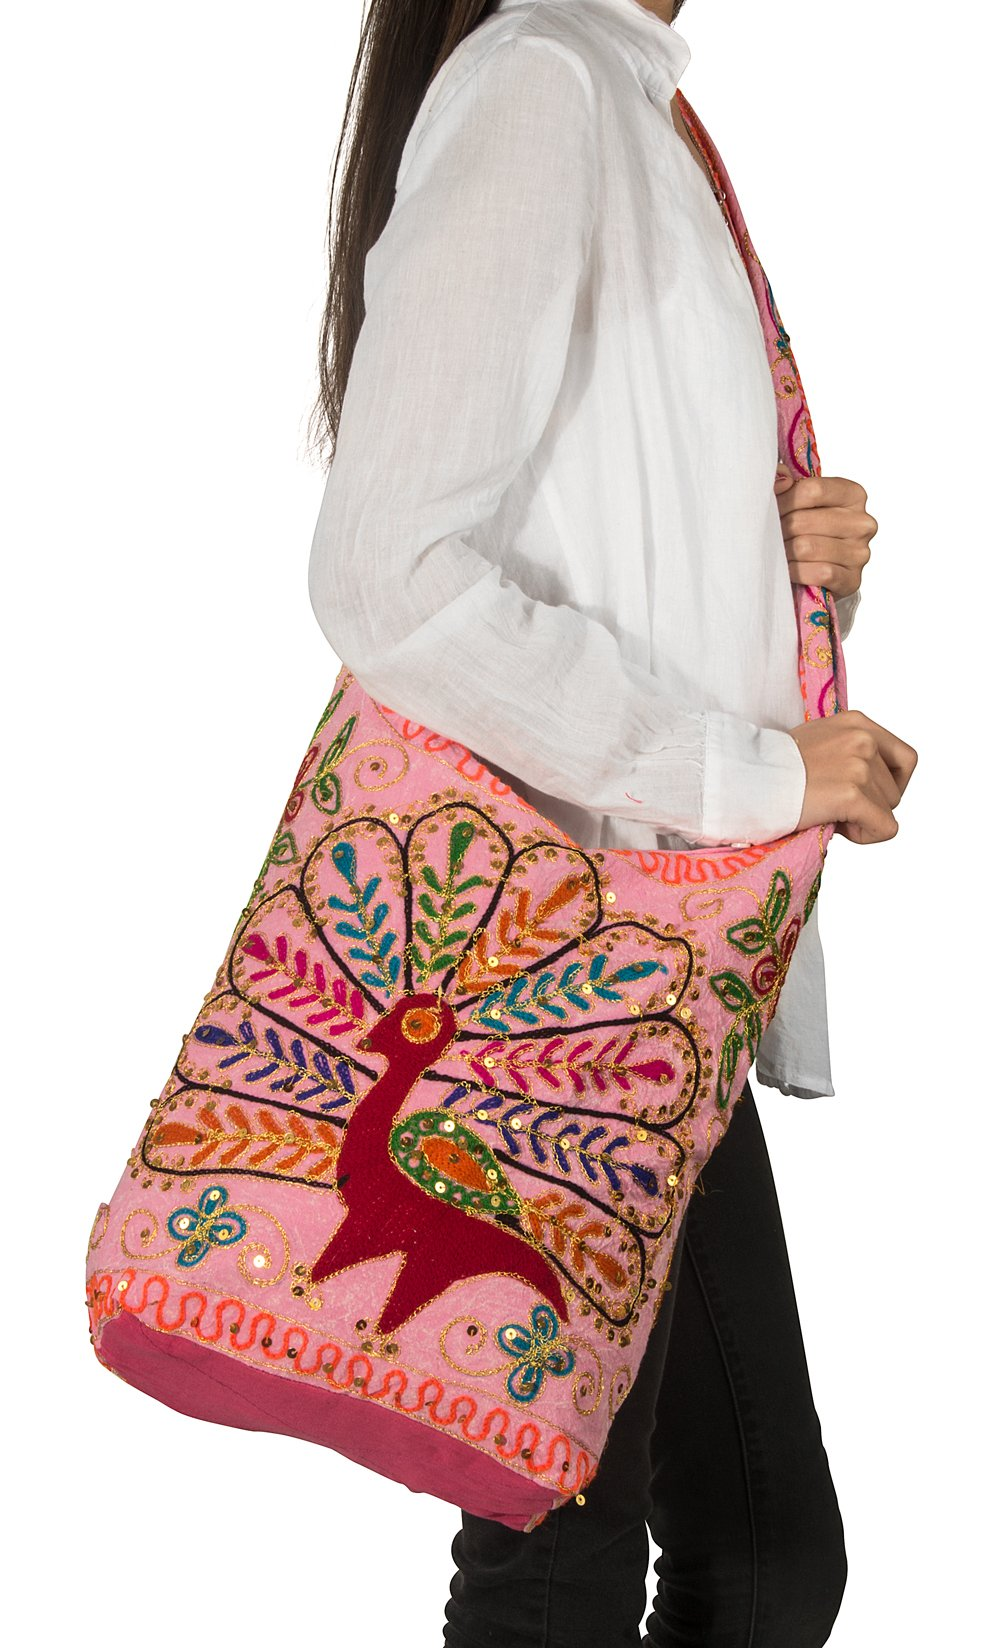 Patchwork Peacock Handmade Pink Cotton Hobo Crossbody Shoulder Bag Hipster Boho Women Sling